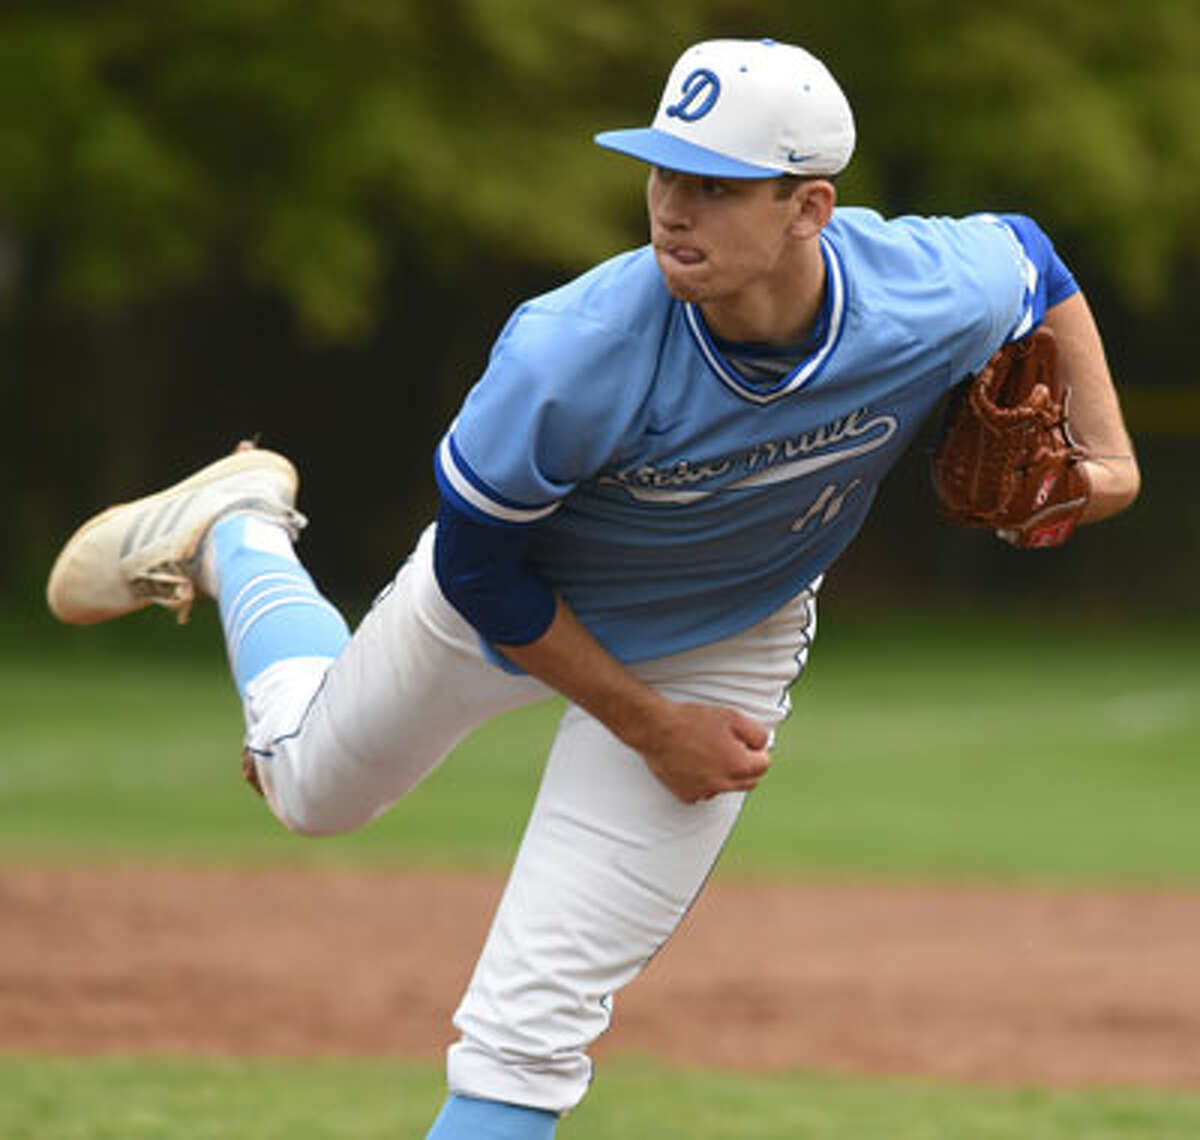 Darien's Henry Williams follows through on a pitch during the Blue Wave's baseball game against New Canaan at Mead Park in New Canaan on Friday, May 3, 2019. - Dave Stewart/Hearst Connecticut Media